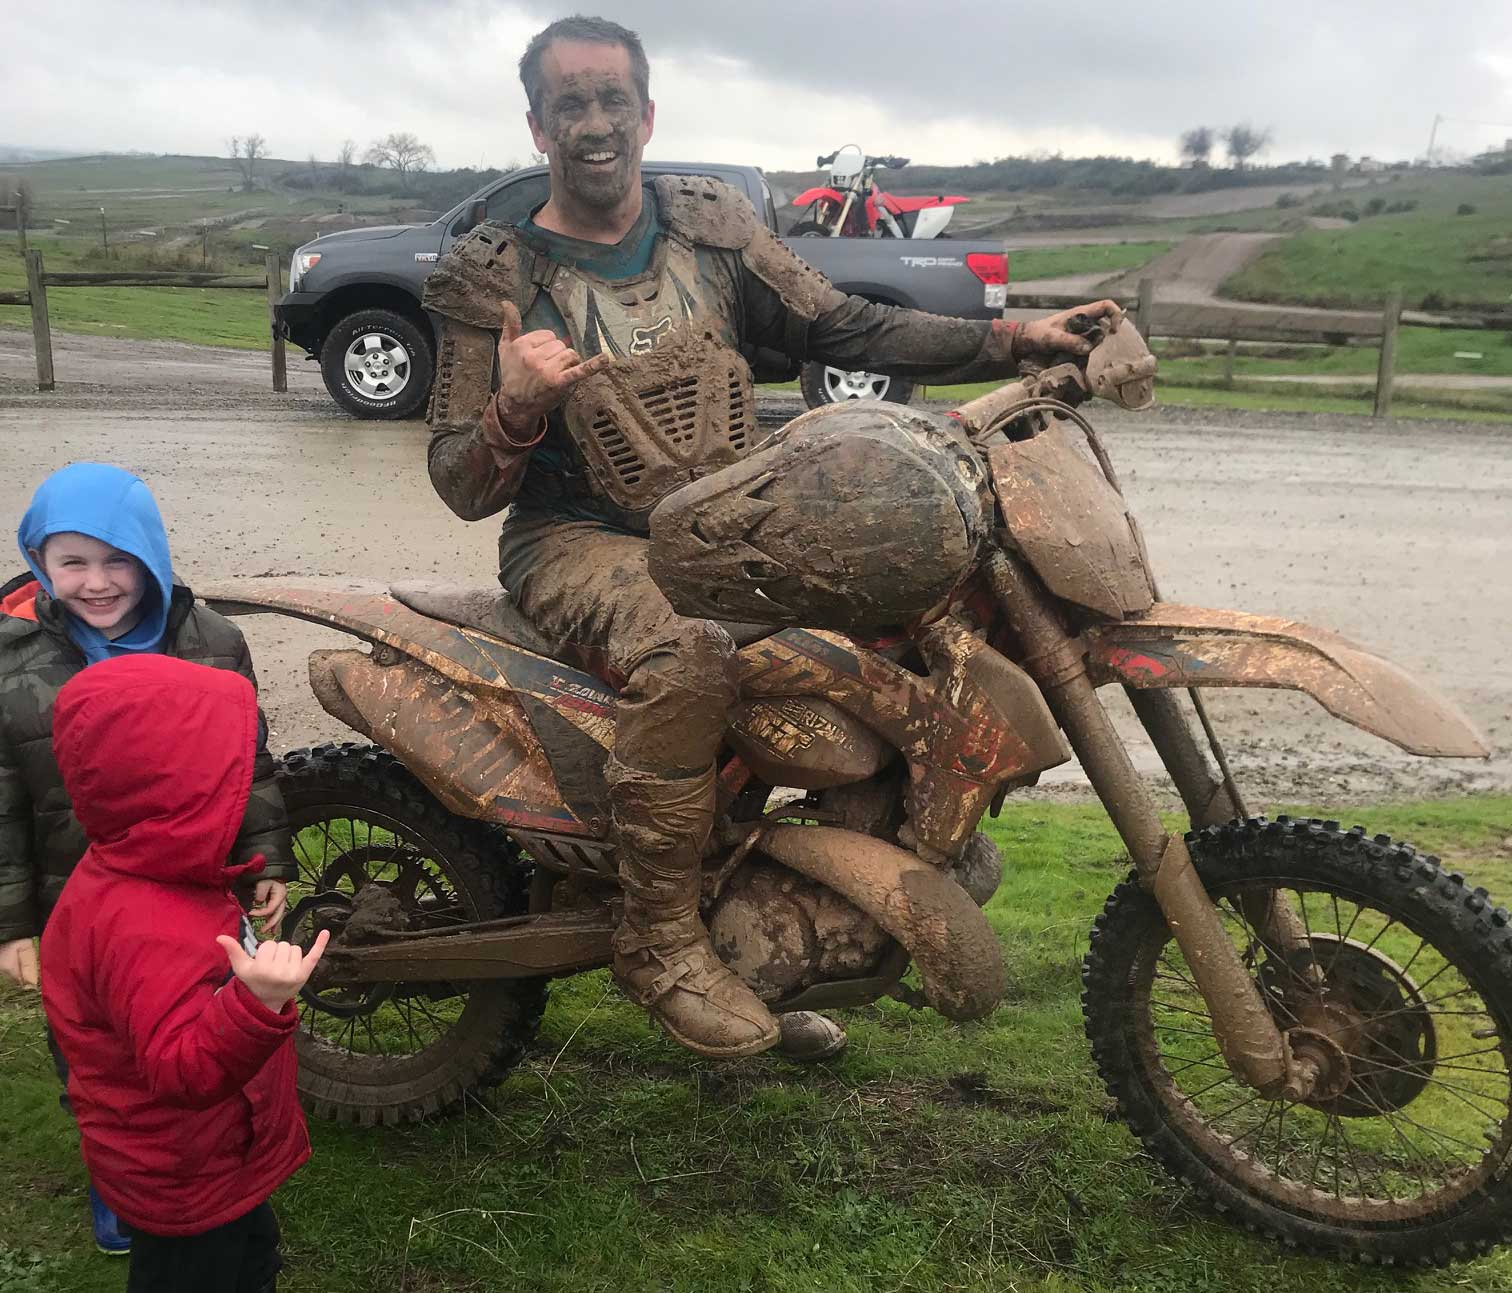 Randy Getting Muddy